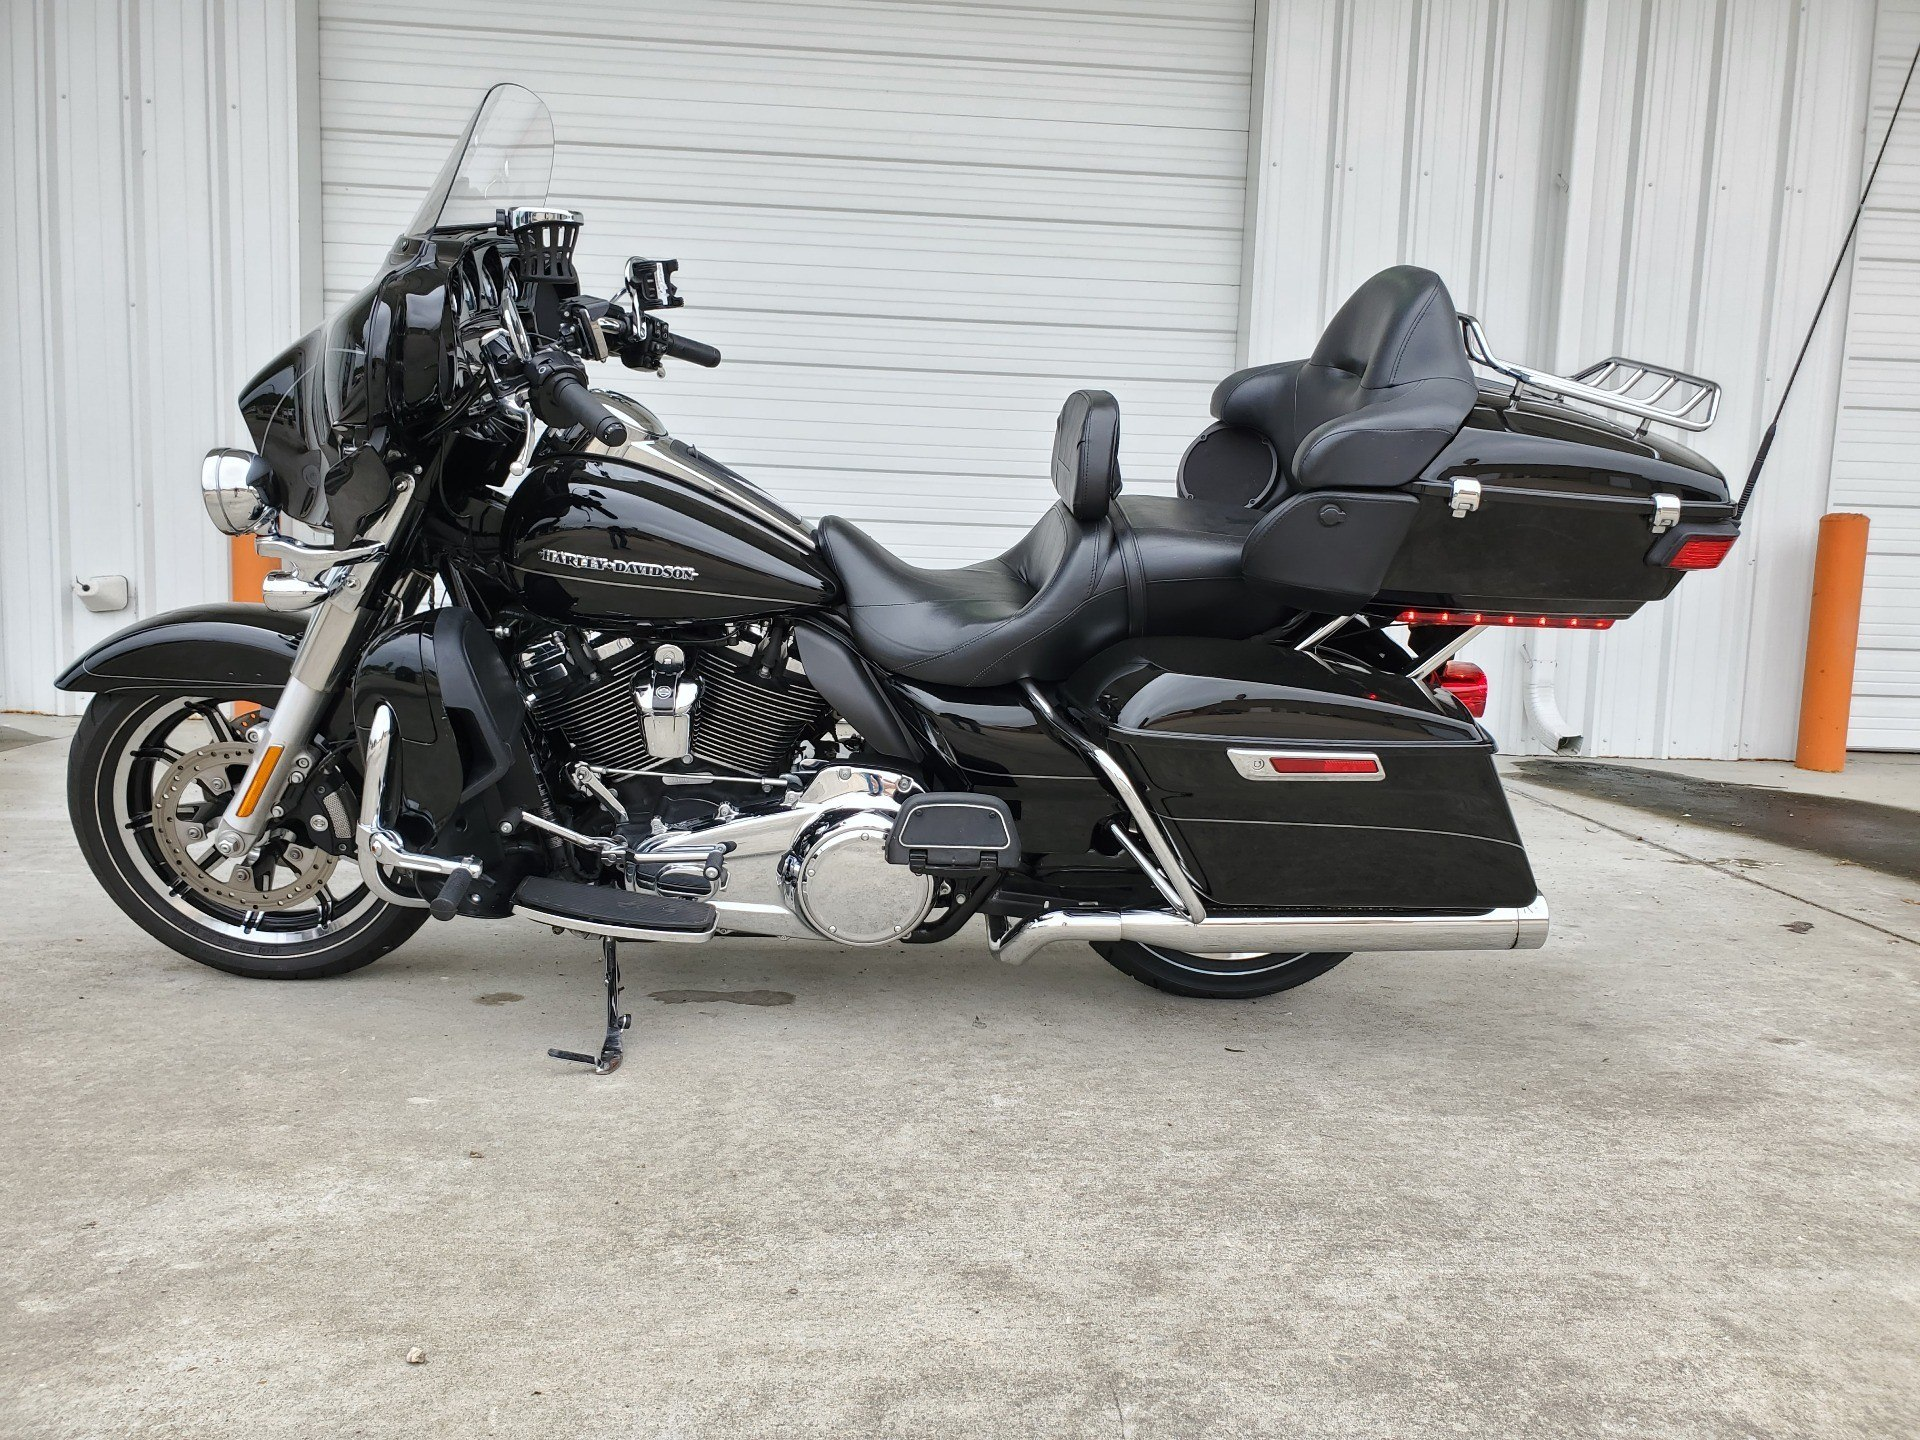 2017 Harley-Davidson Ultra Limited in Monroe, Louisiana - Photo 2